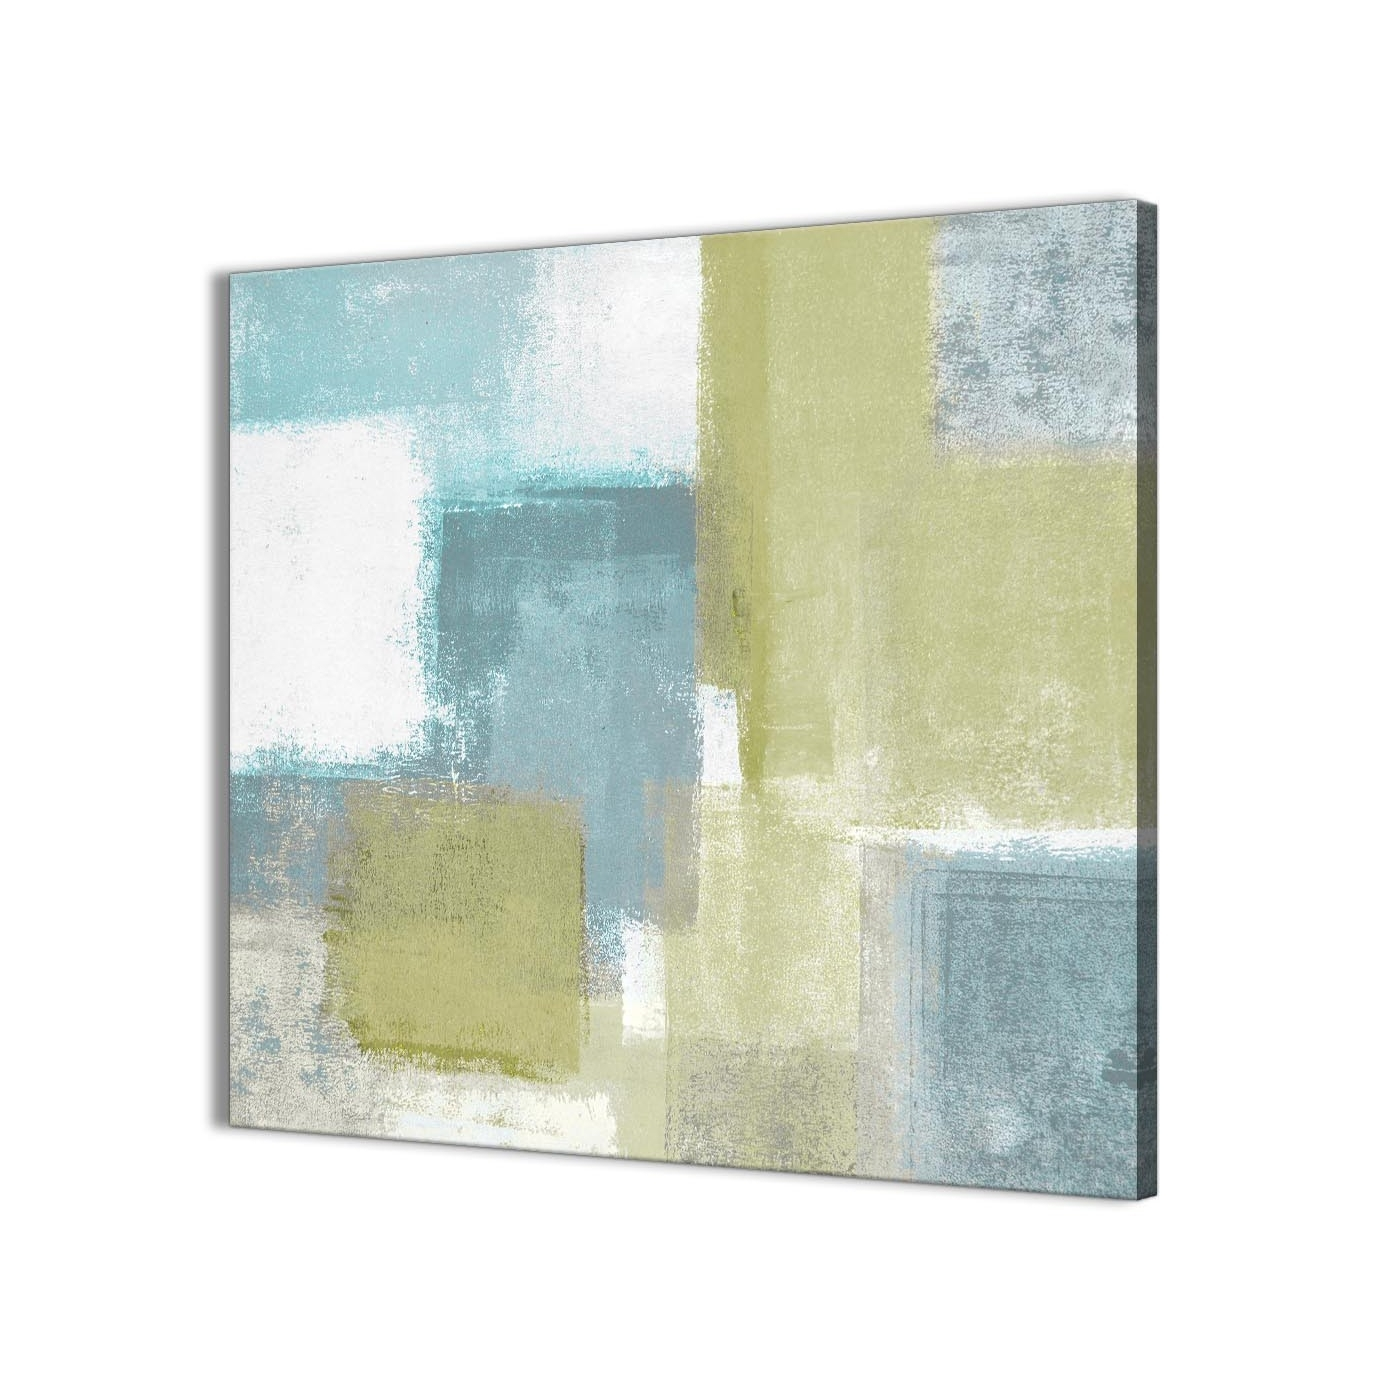 Lime Green Teal Abstract Painting Canvas Wall Art Print – Modern With Most Current Yellow And Green Wall Art (View 5 of 15)